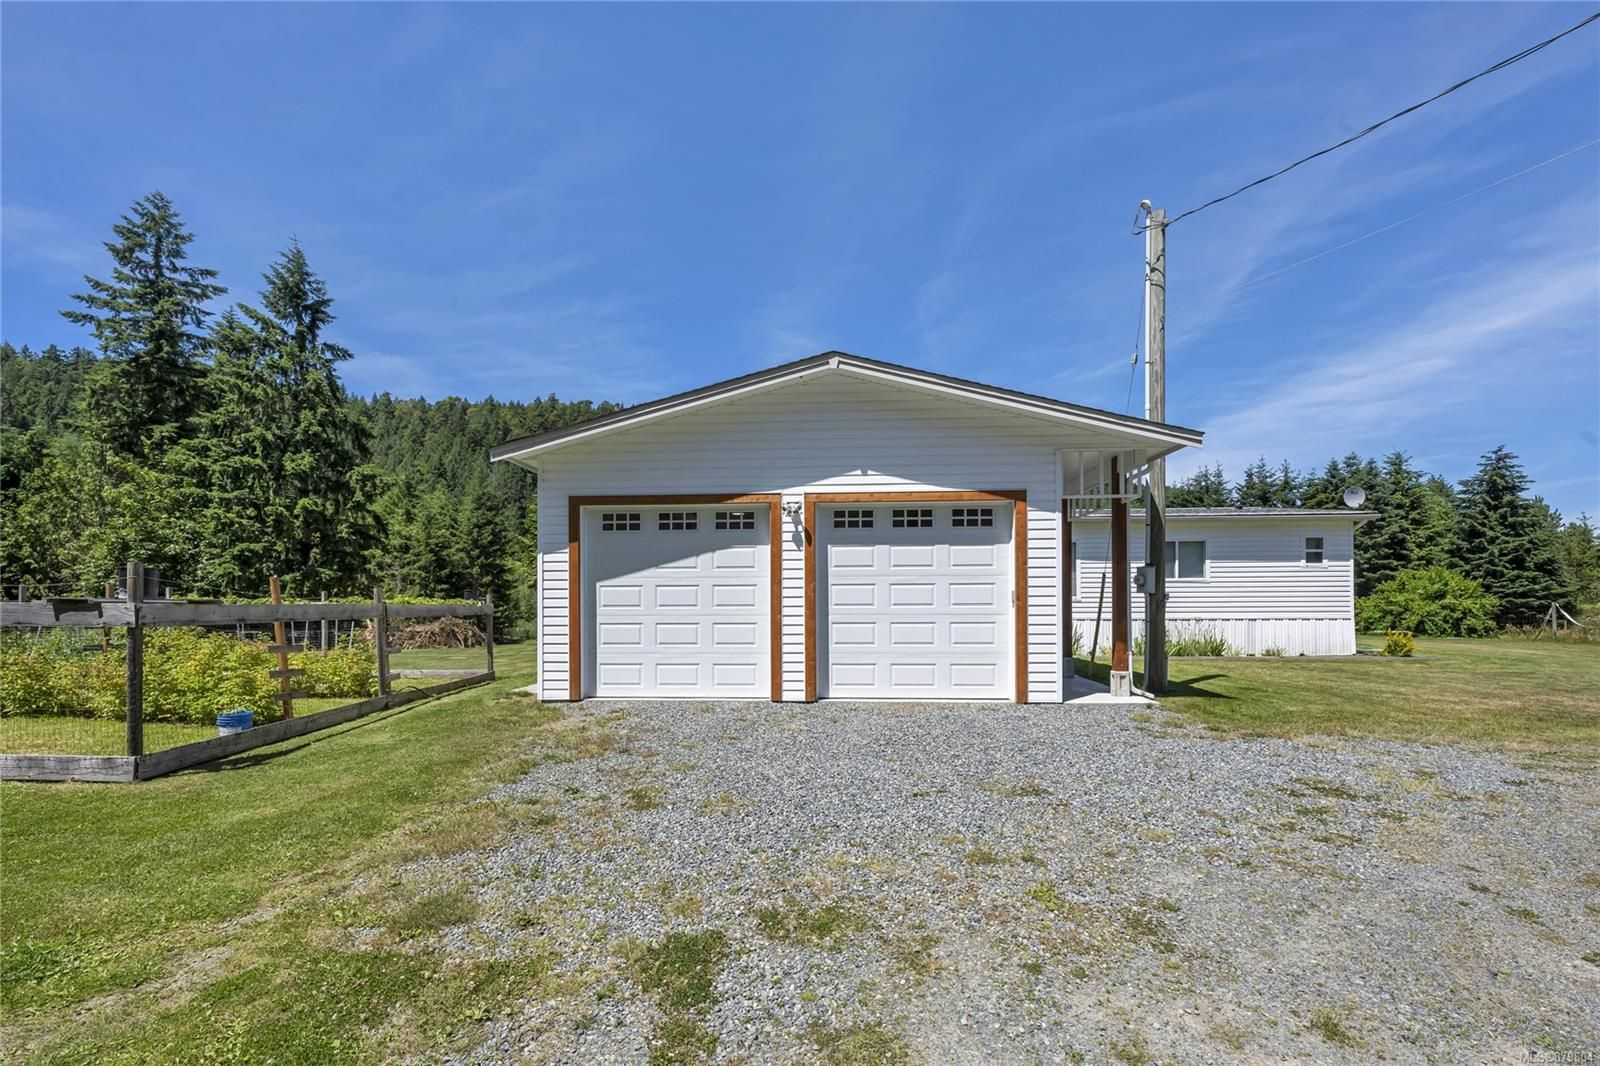 Photo 9: Photos: 3596 Riverside Rd in : ML Cobble Hill Manufactured Home for sale (Malahat & Area)  : MLS®# 879804